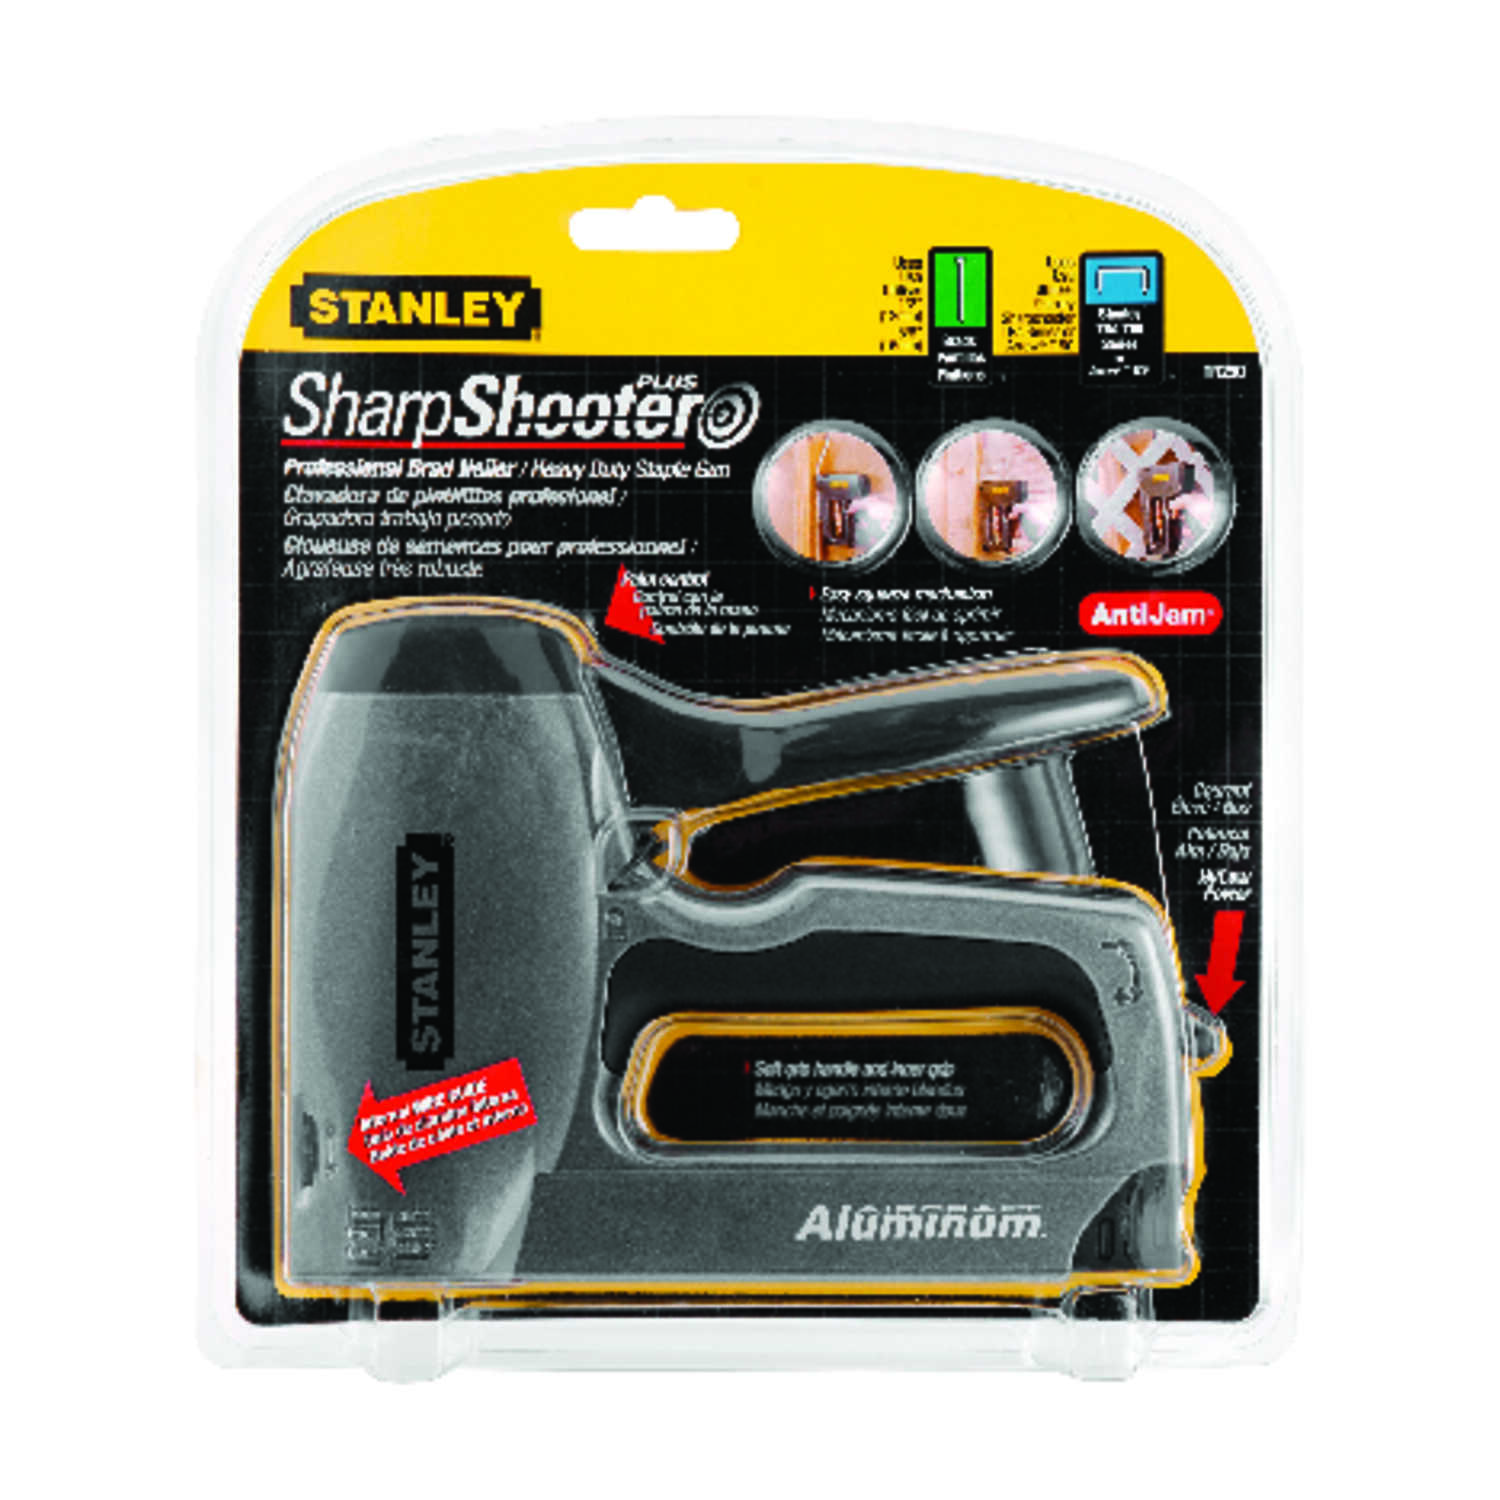 Stanley  SharpShooter Plus  Cordless  16 Ga. Stapler